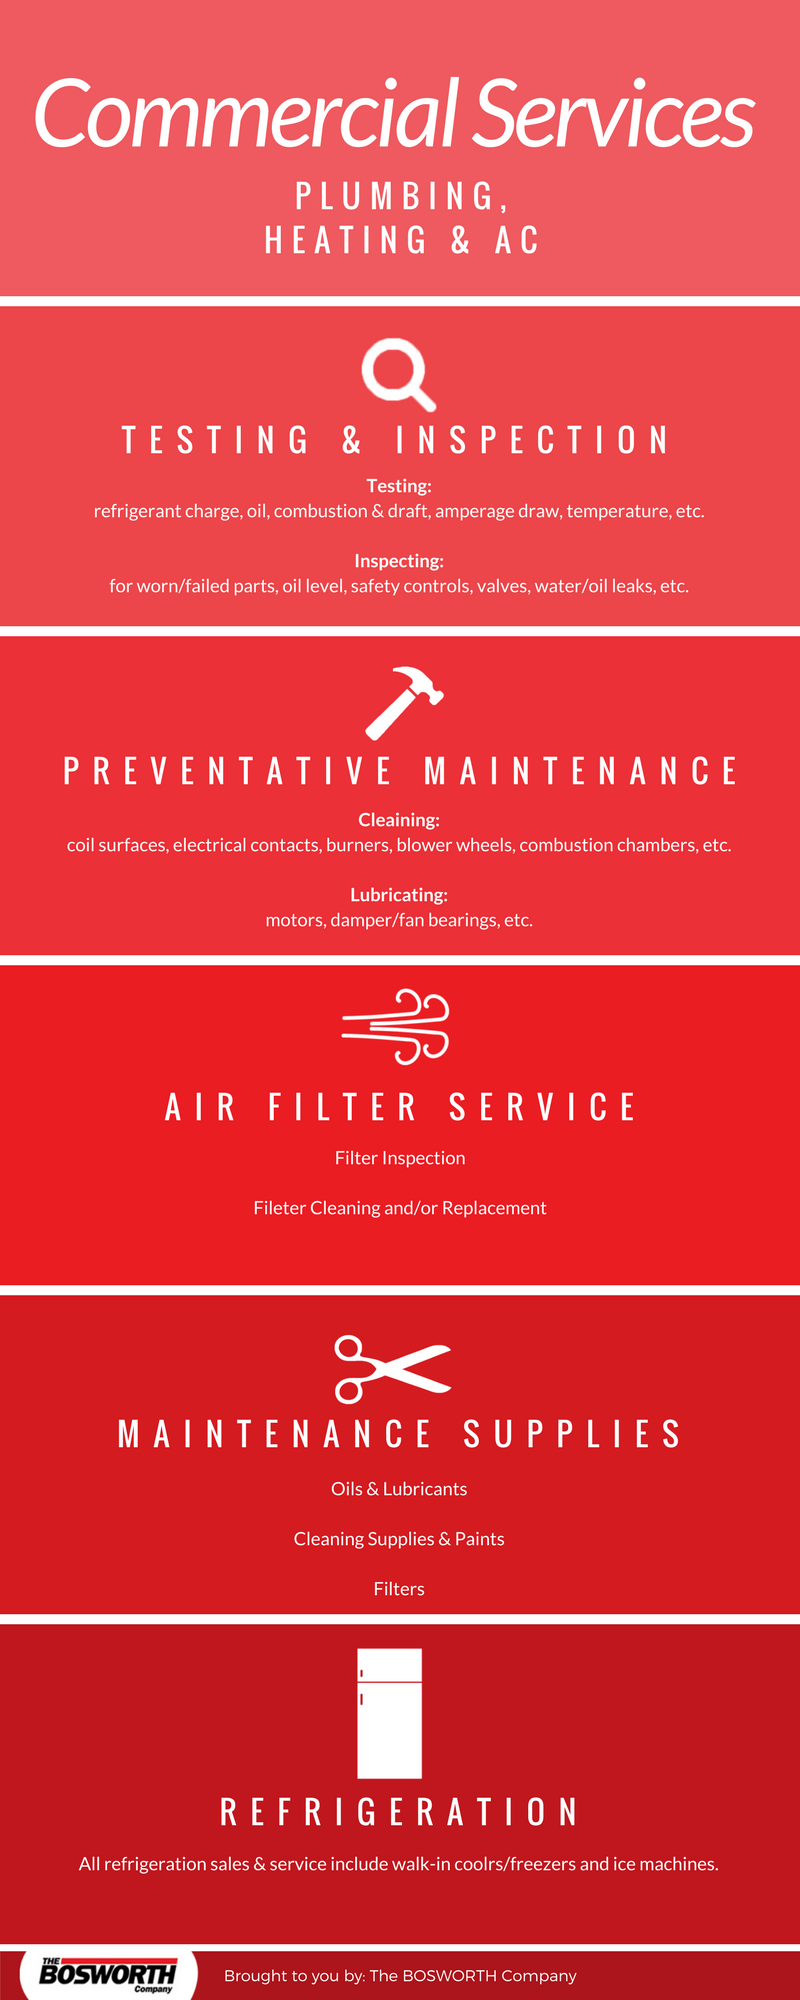 Bosworth commercial Services Infographic